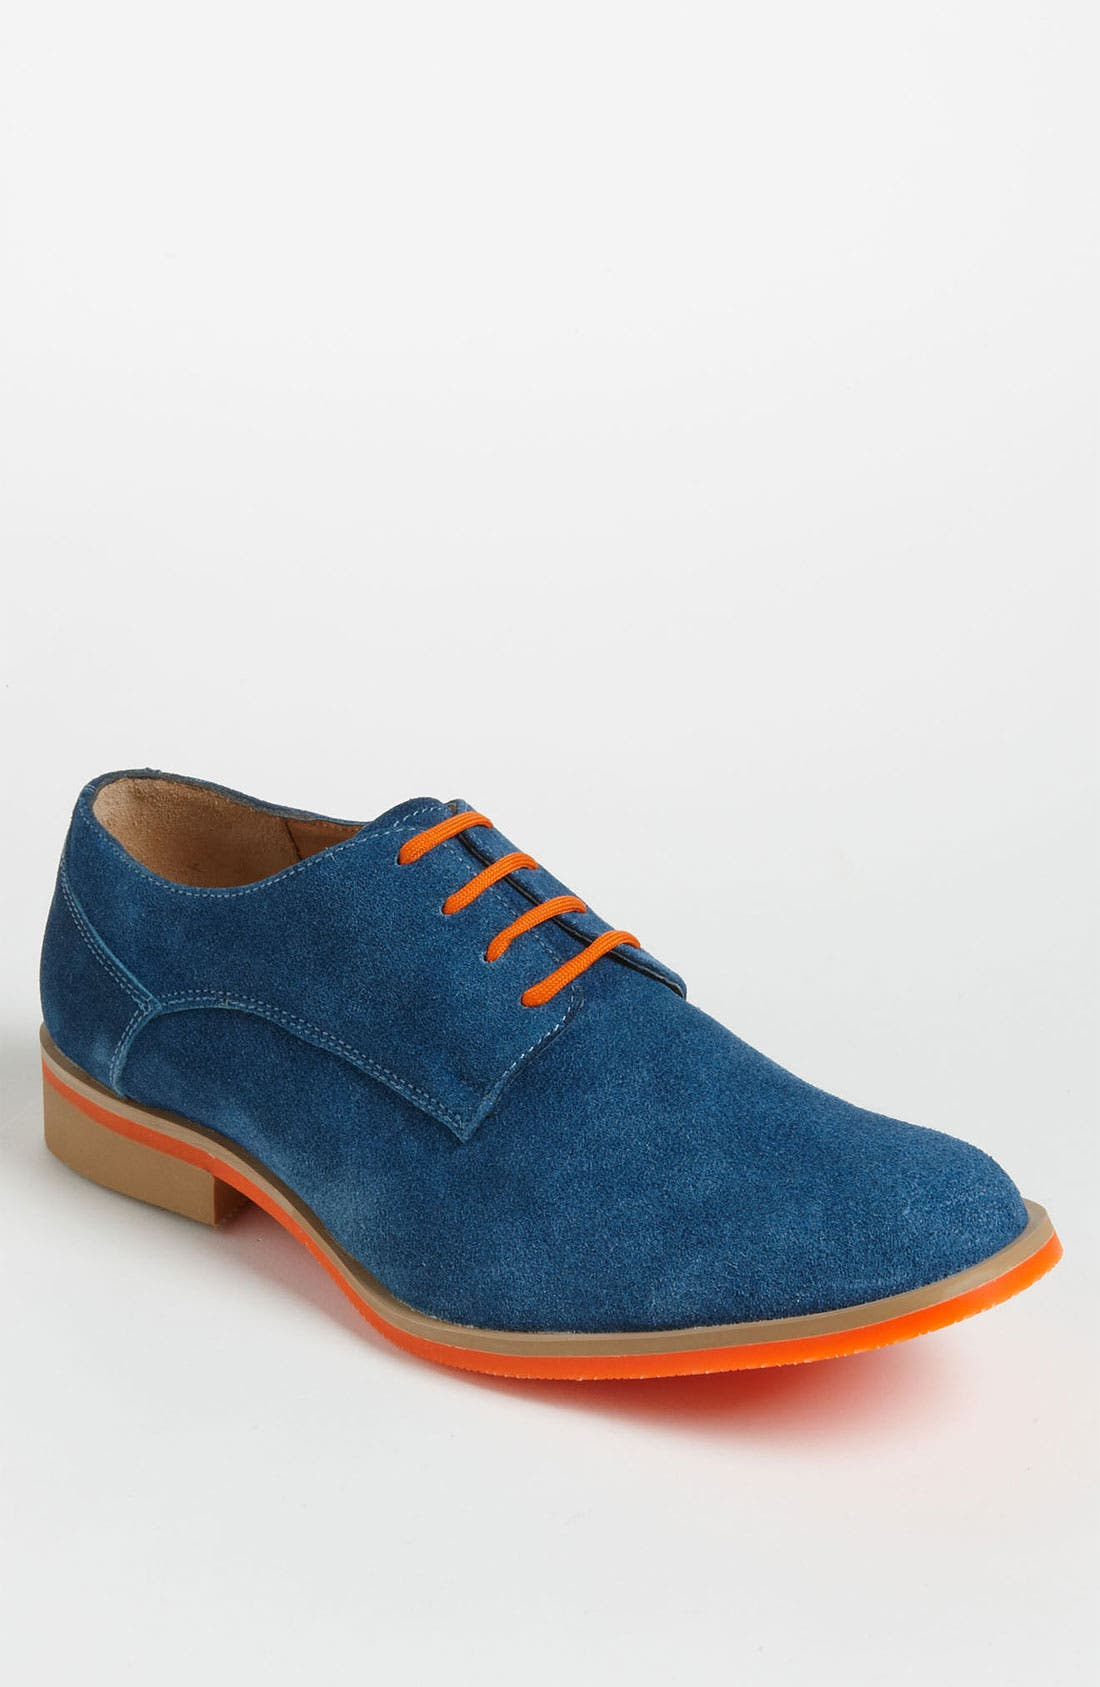 Alternate Image 1 Selected - J.D. Fisk 'Callum' Suede Buck Shoe